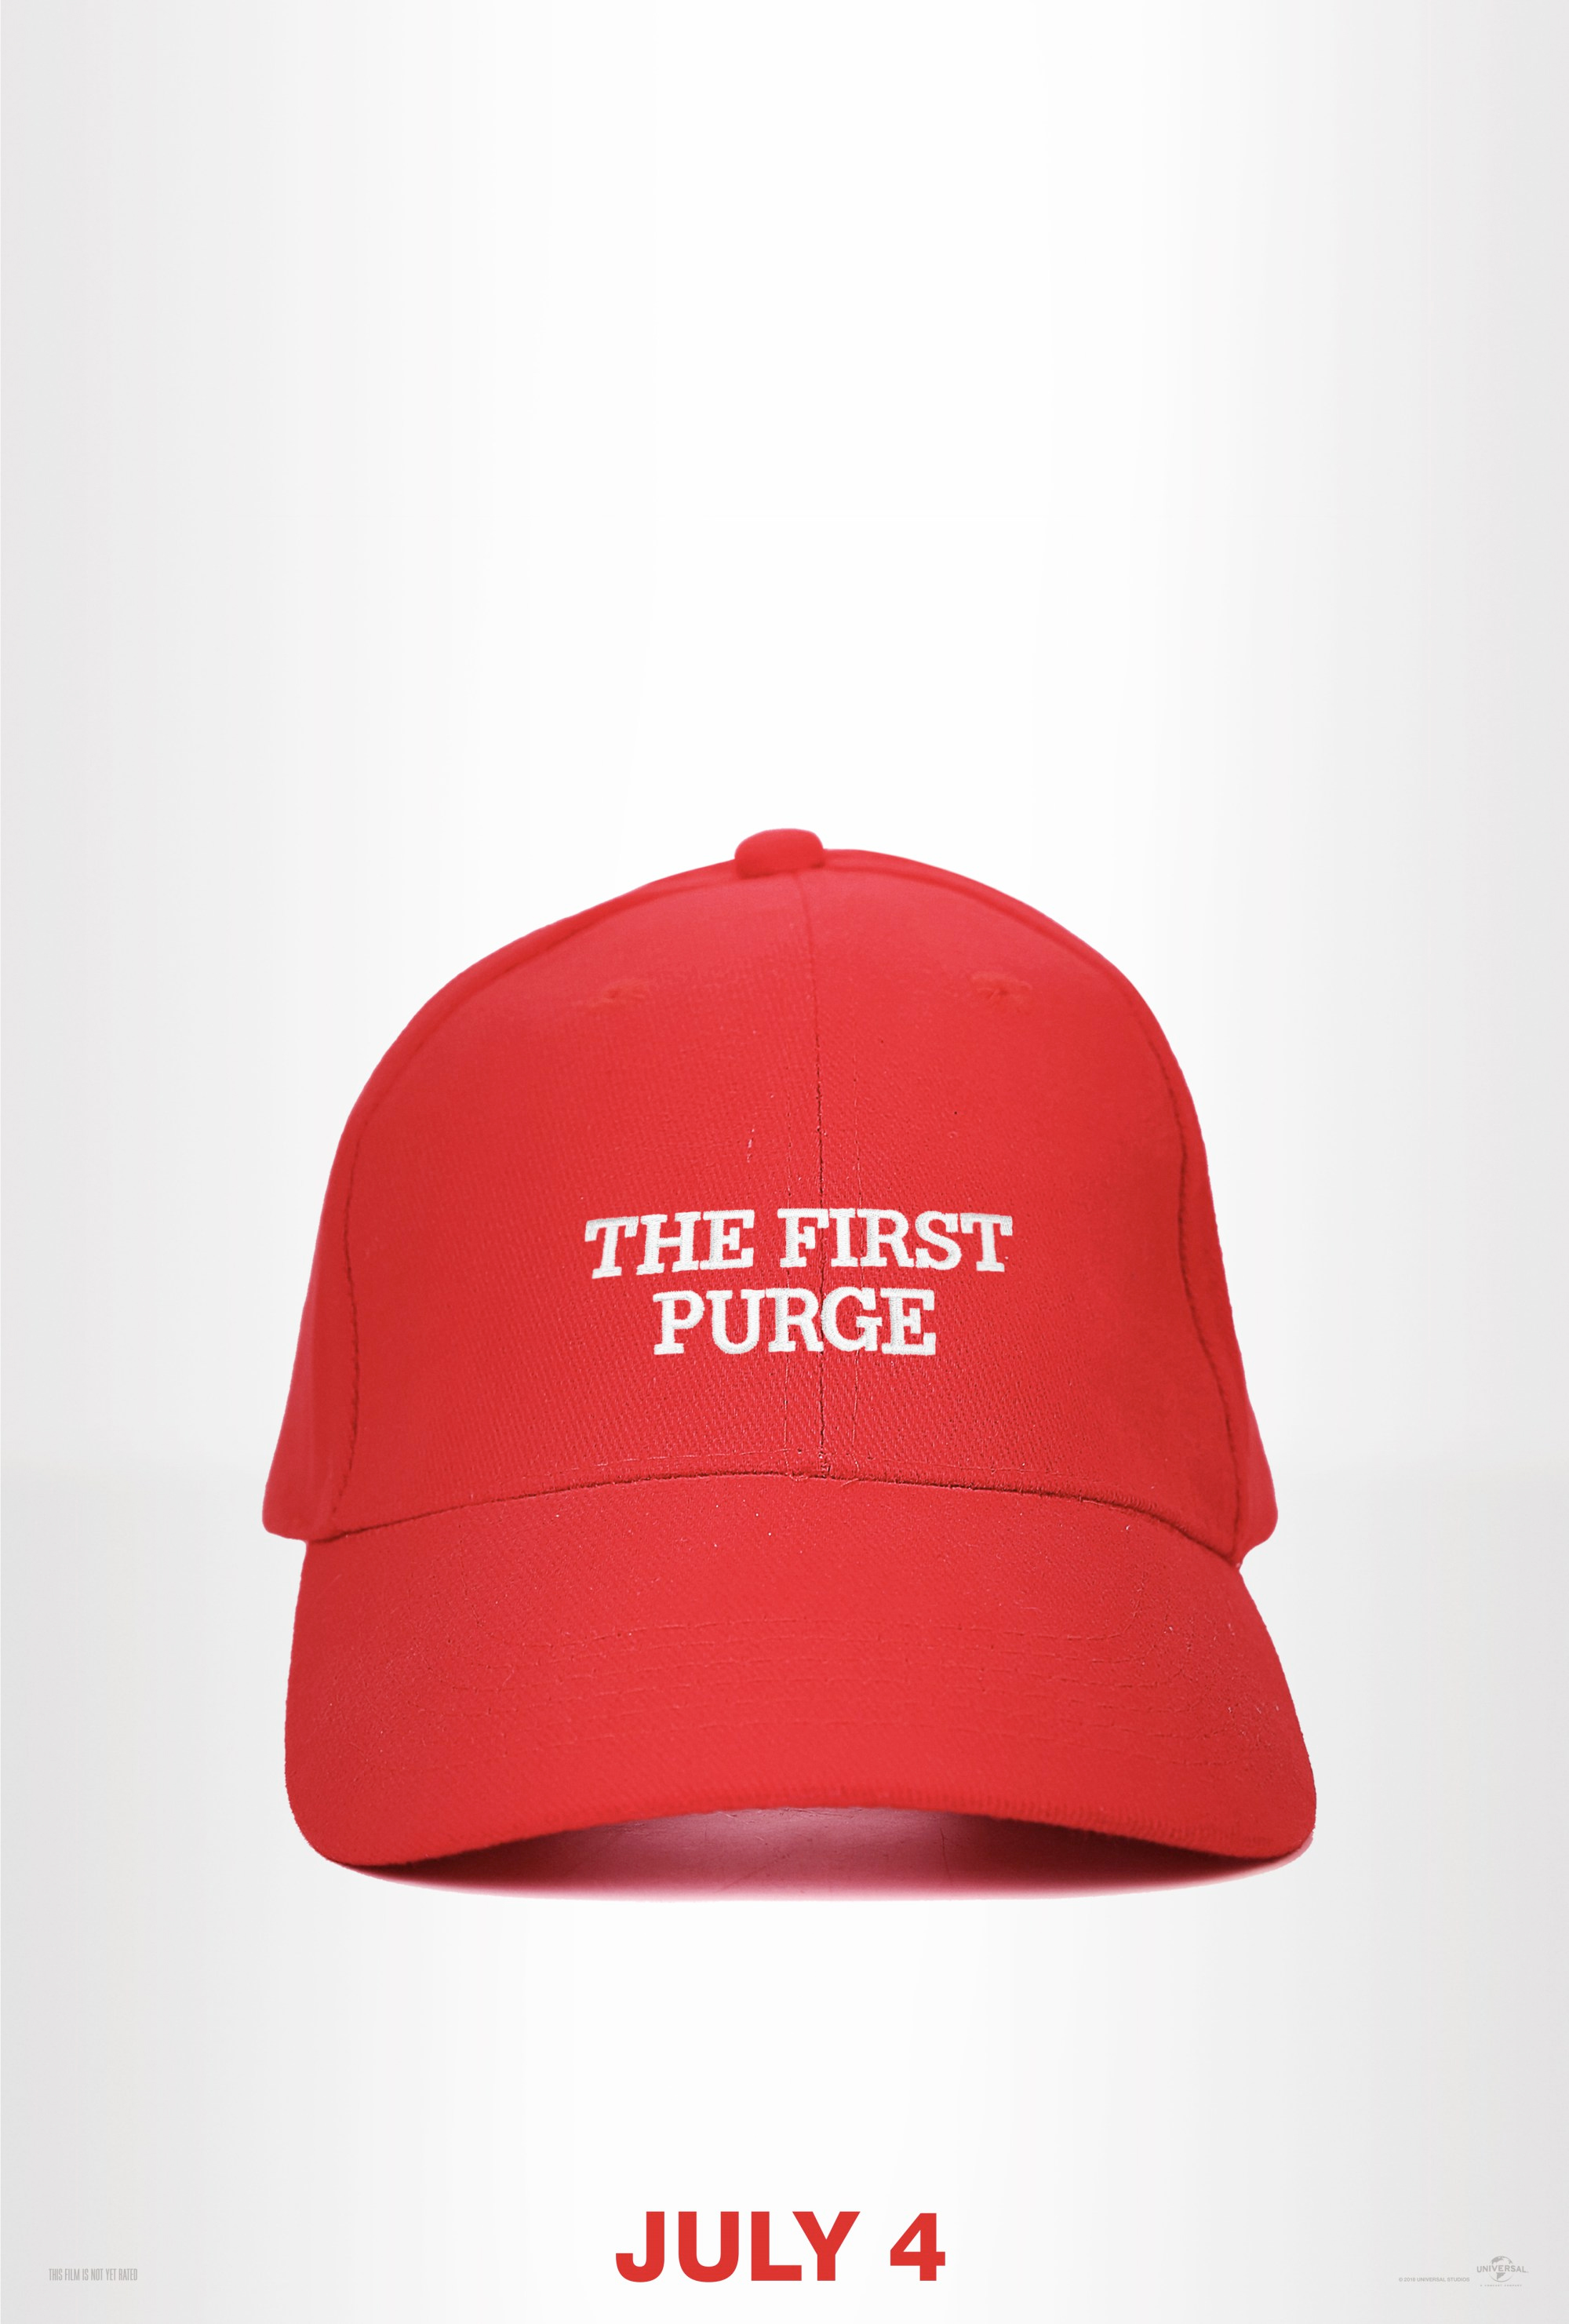 The First Purge (Credit: Universal Pictures)